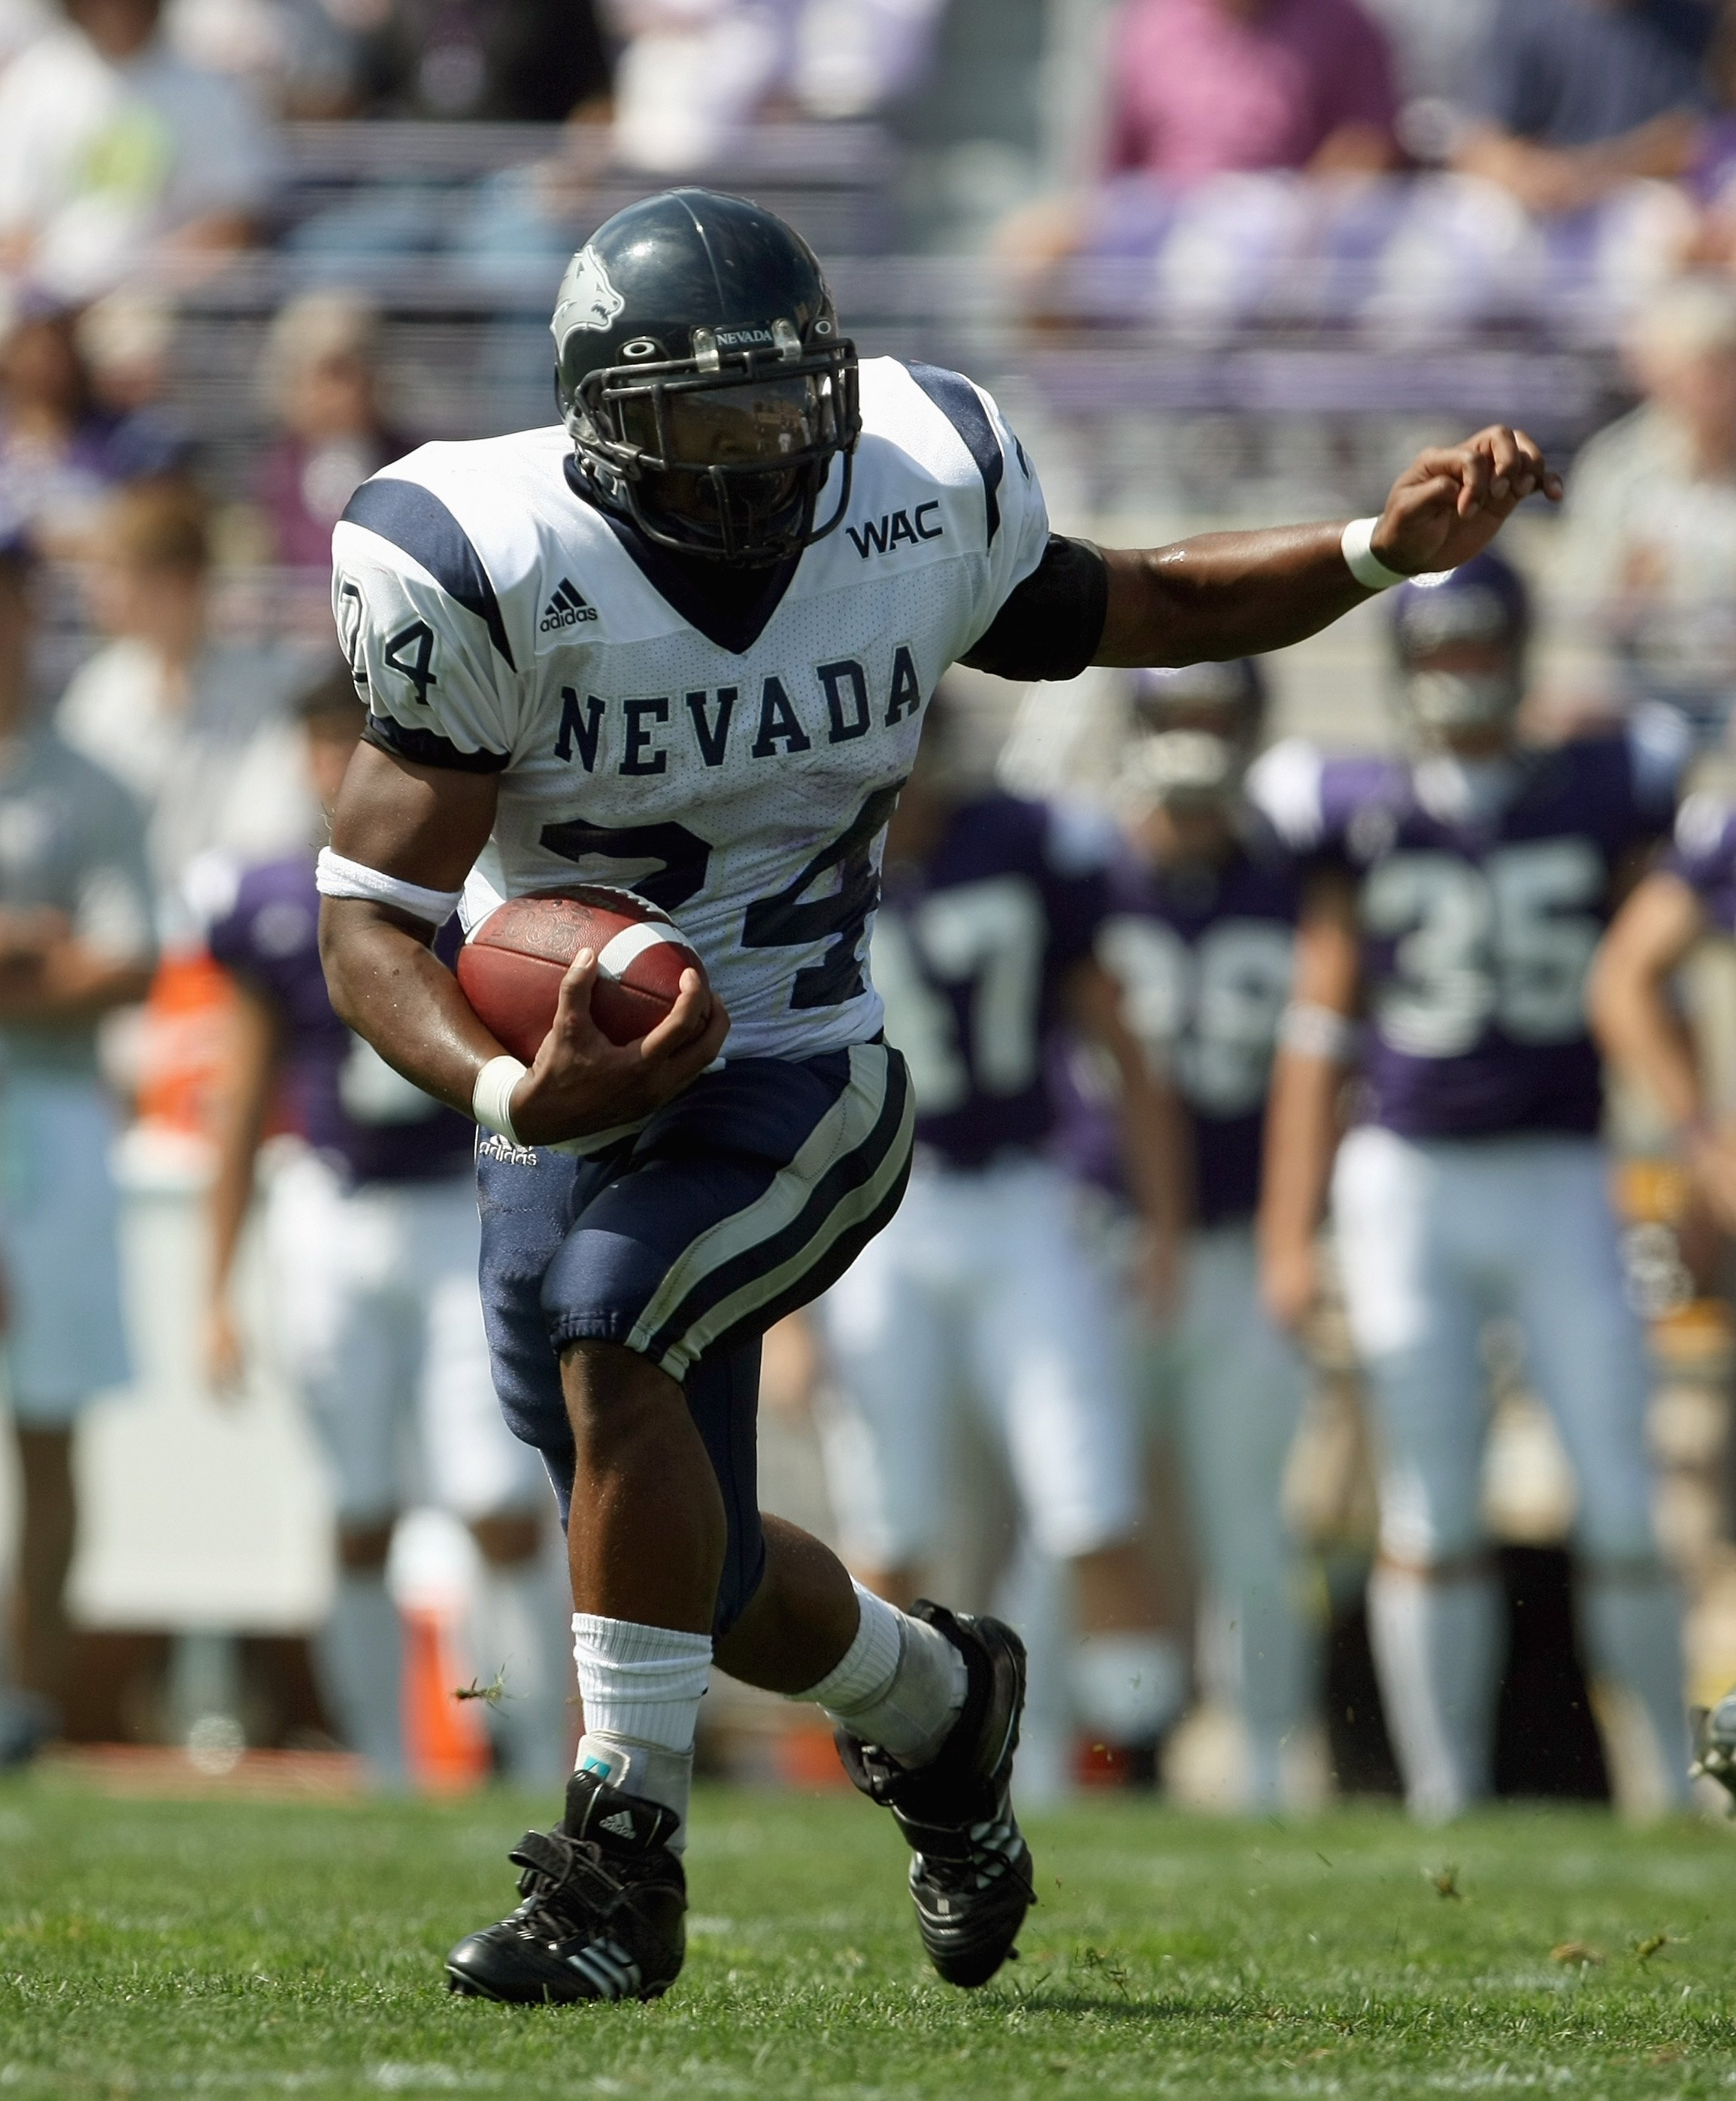 EVANSTON, IL - SEPTEMBER 8:  Brandon Fragger #24 of the Nevada Wolf Pack carries the ball against the Northwestern Wildcats on September 8, 2007 at Ryan Field at Northwestern University in Evanston, Illinois. (Photo by Jonathan Daniel/Getty Images)